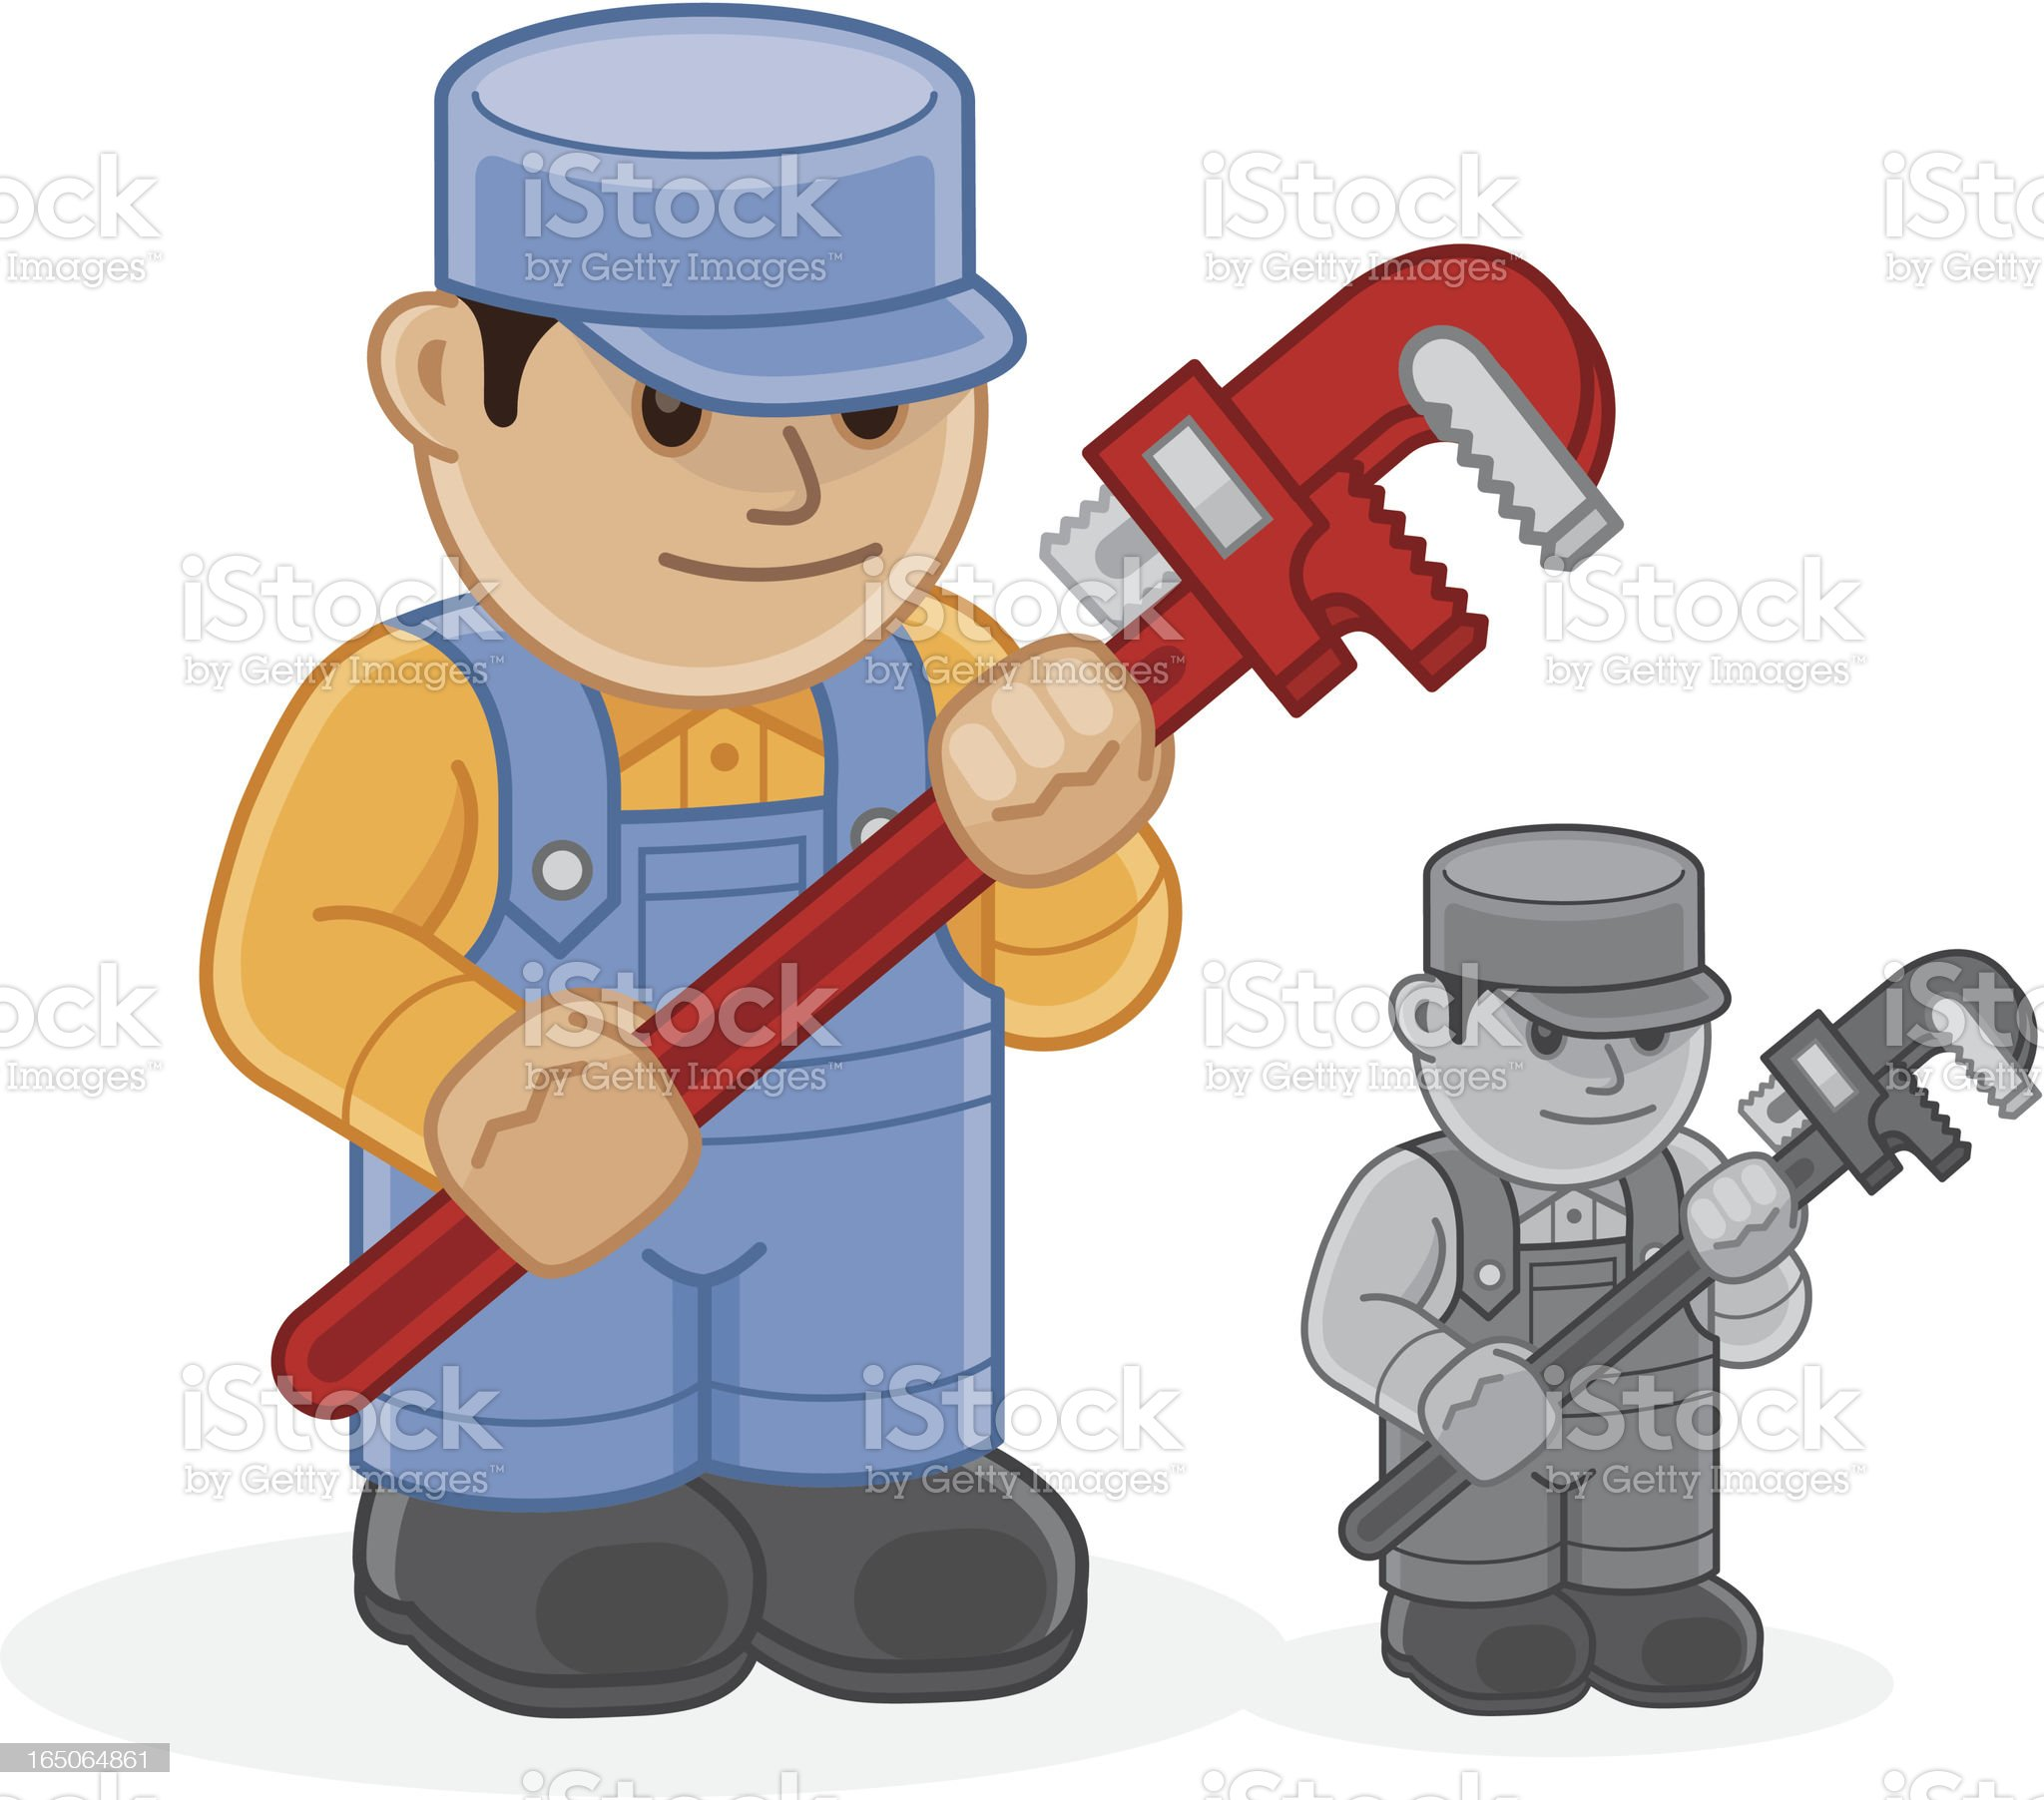 Plumber Icon royalty-free stock vector art